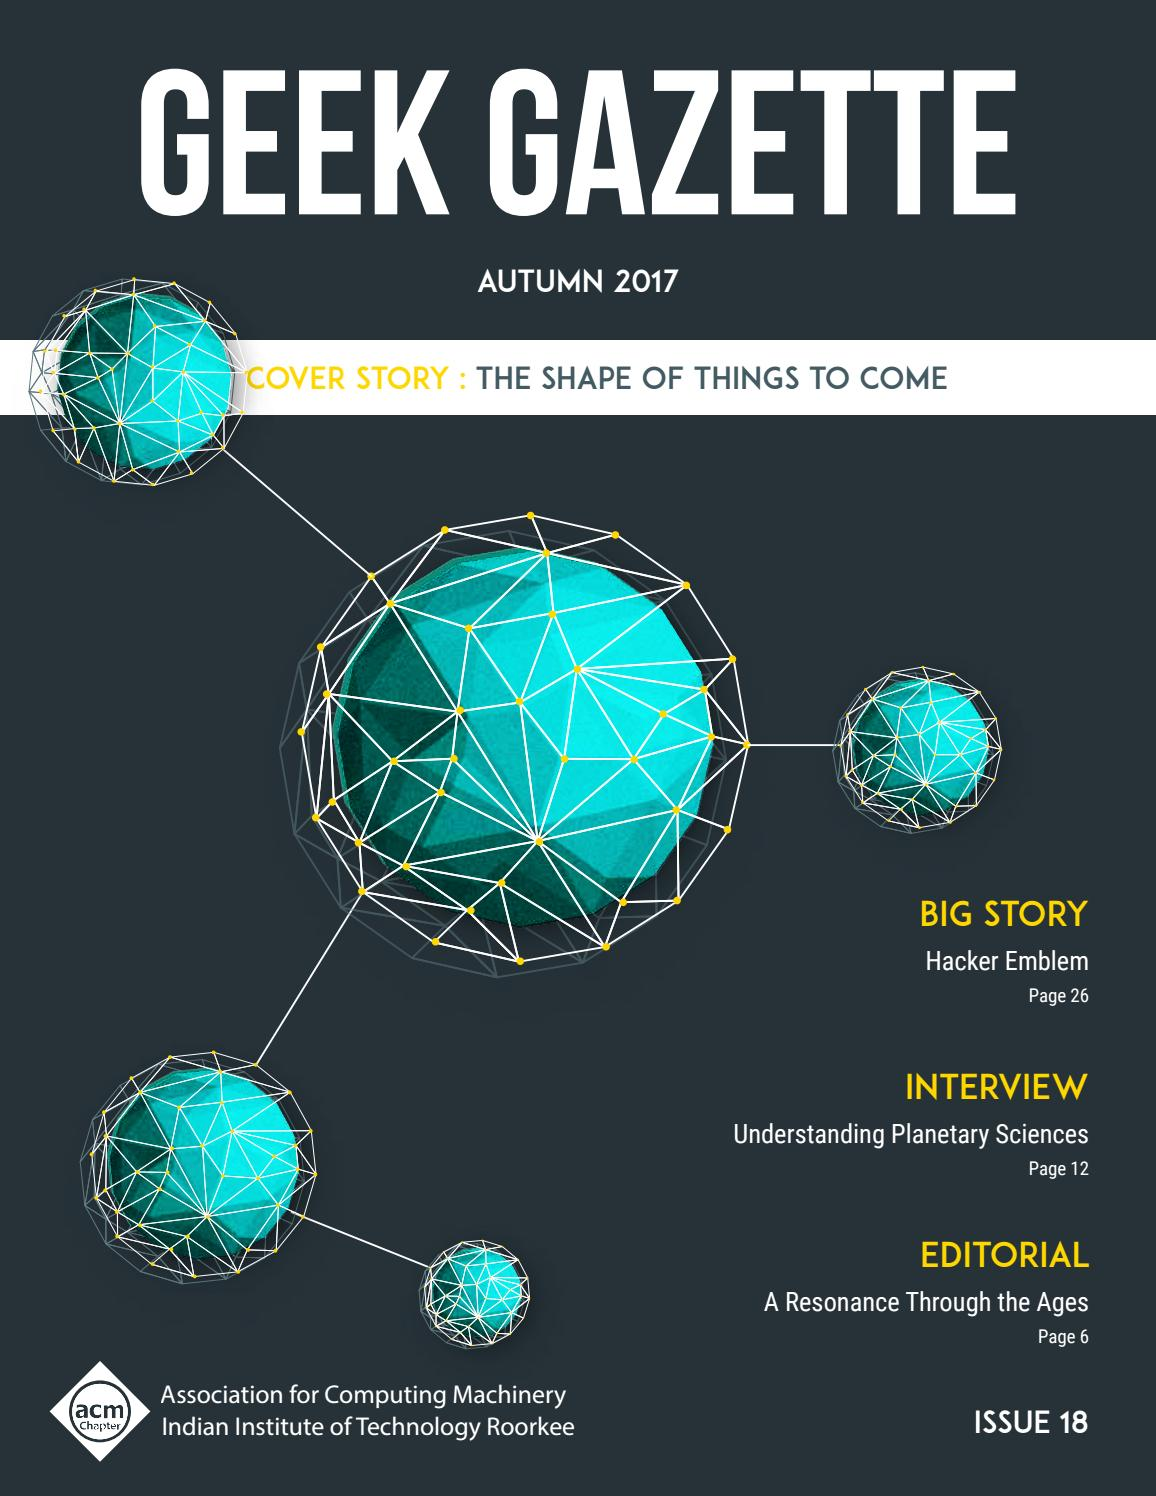 Geek Gazette Autumn 2017 by Geek Gazette - issuu